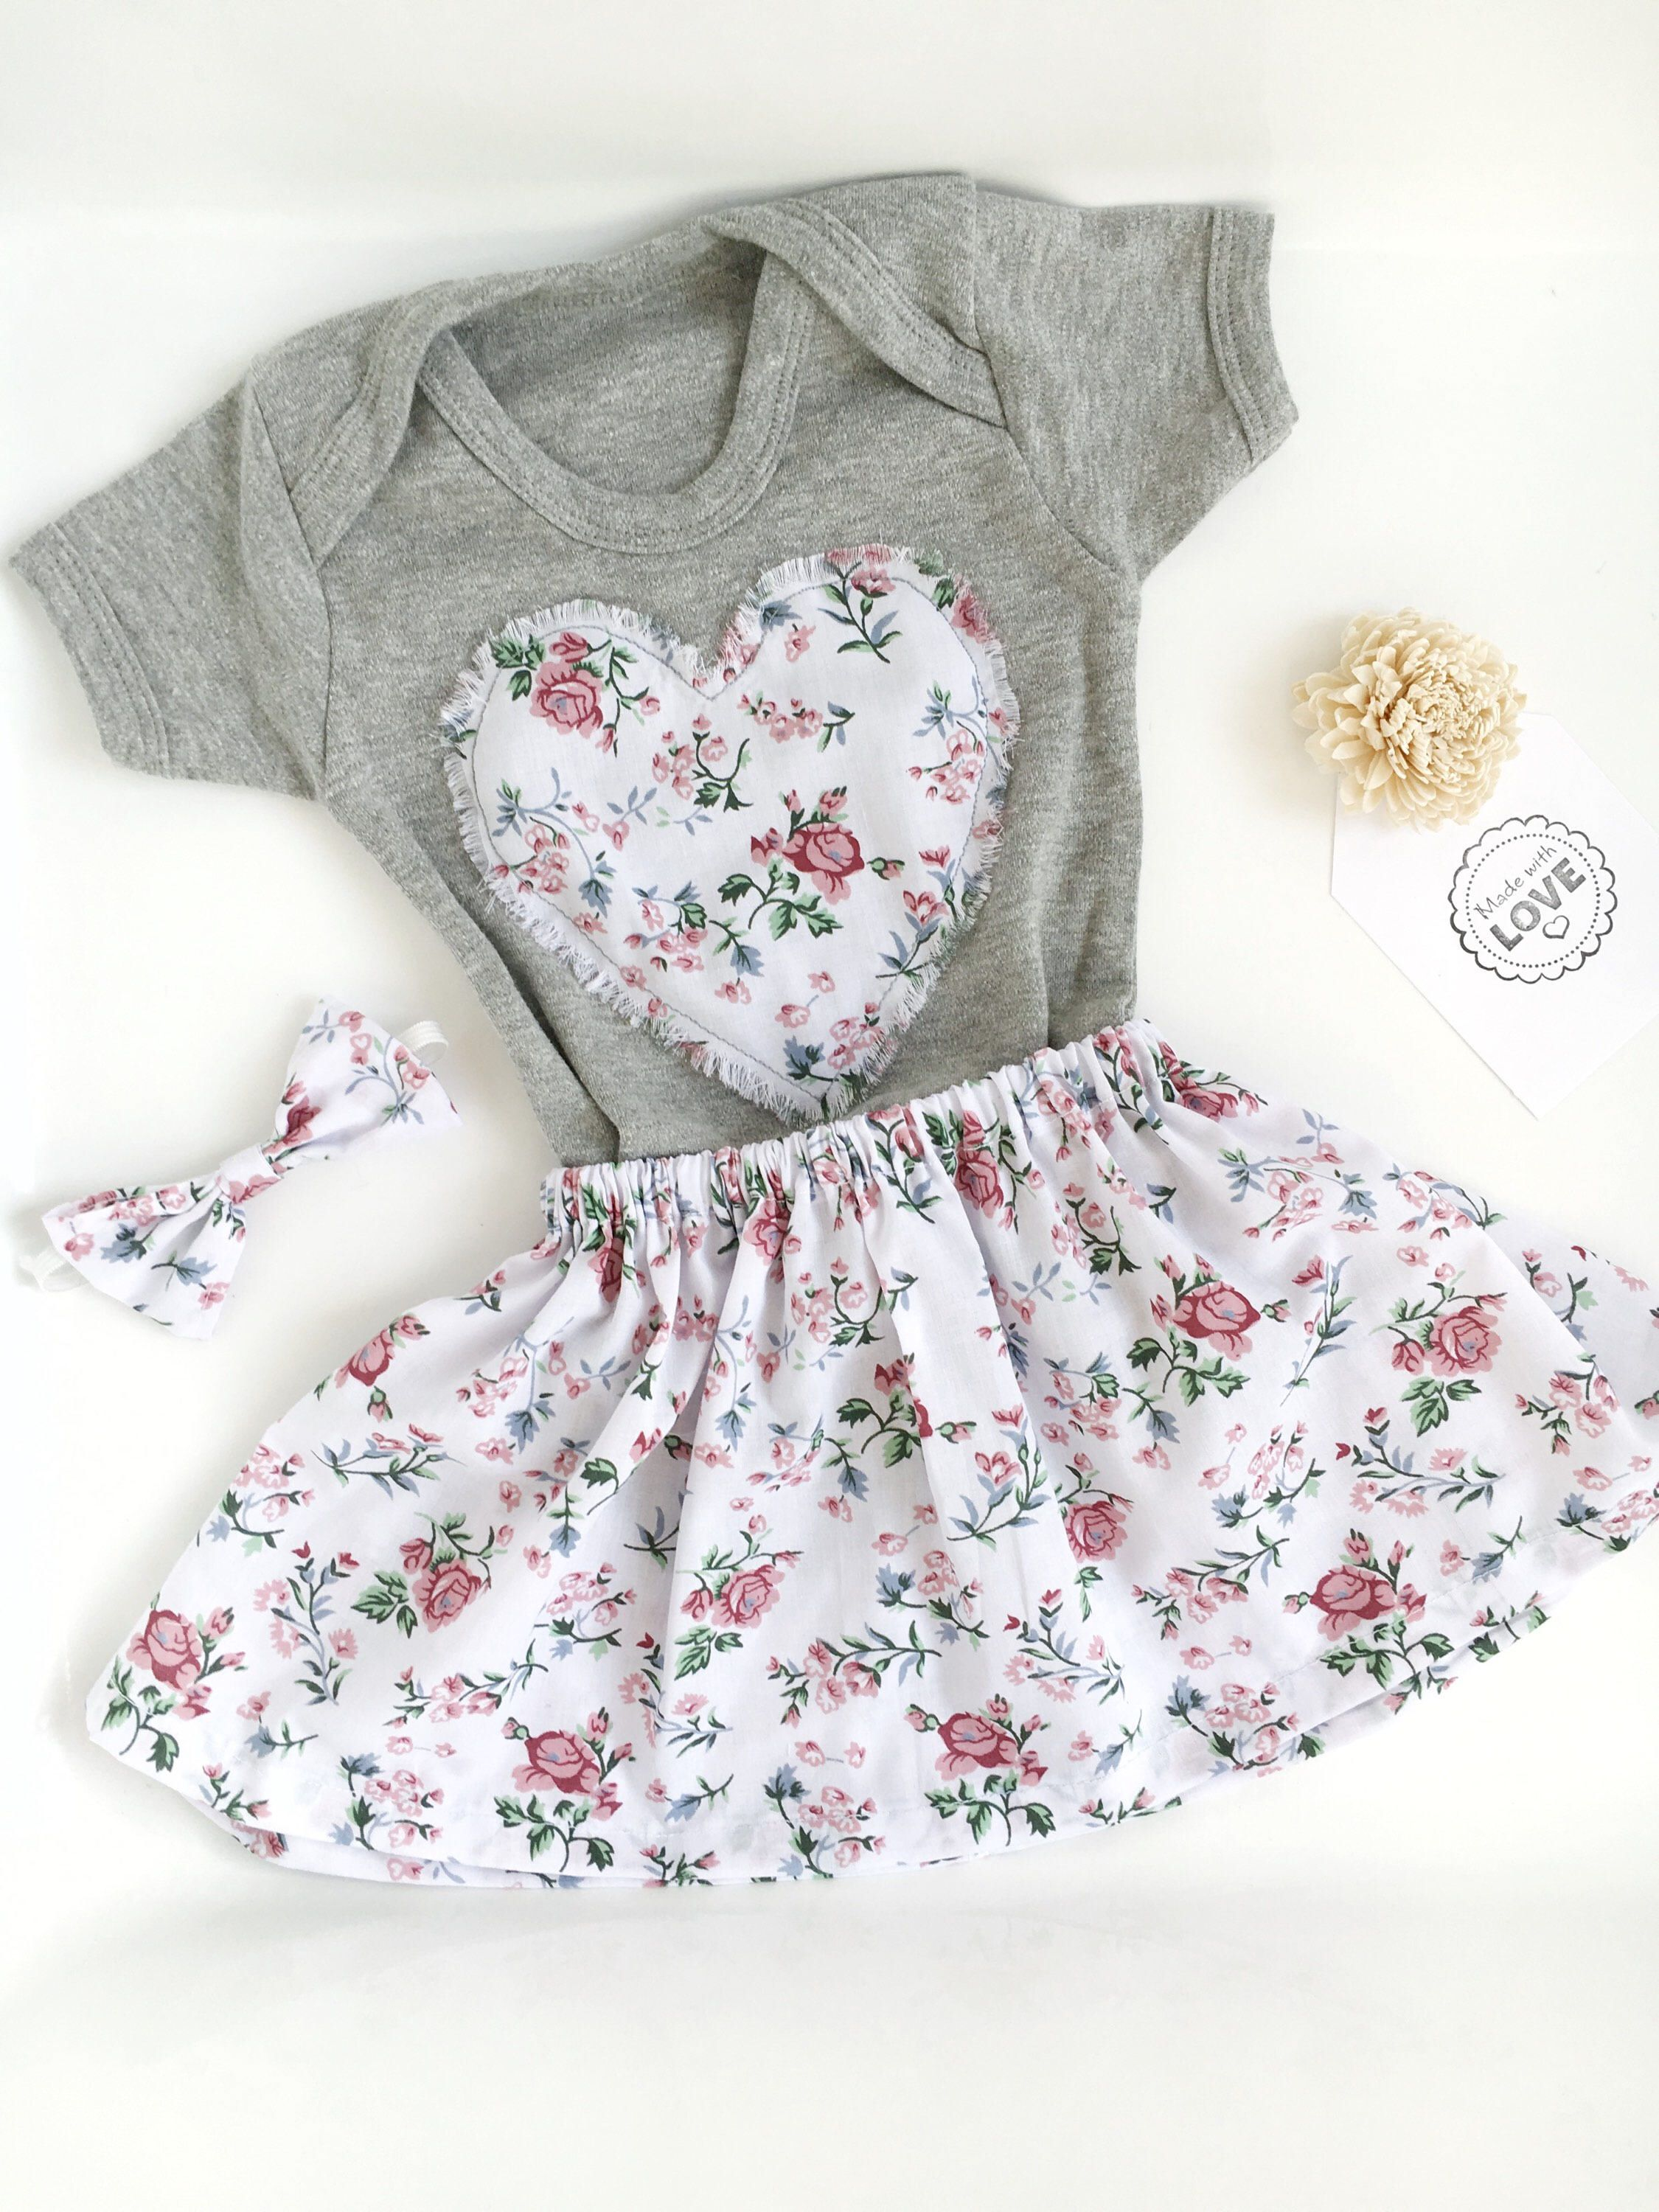 Baby Girl Outfit Baby Grow Outfit Floral Baby Girl Outfit Boho